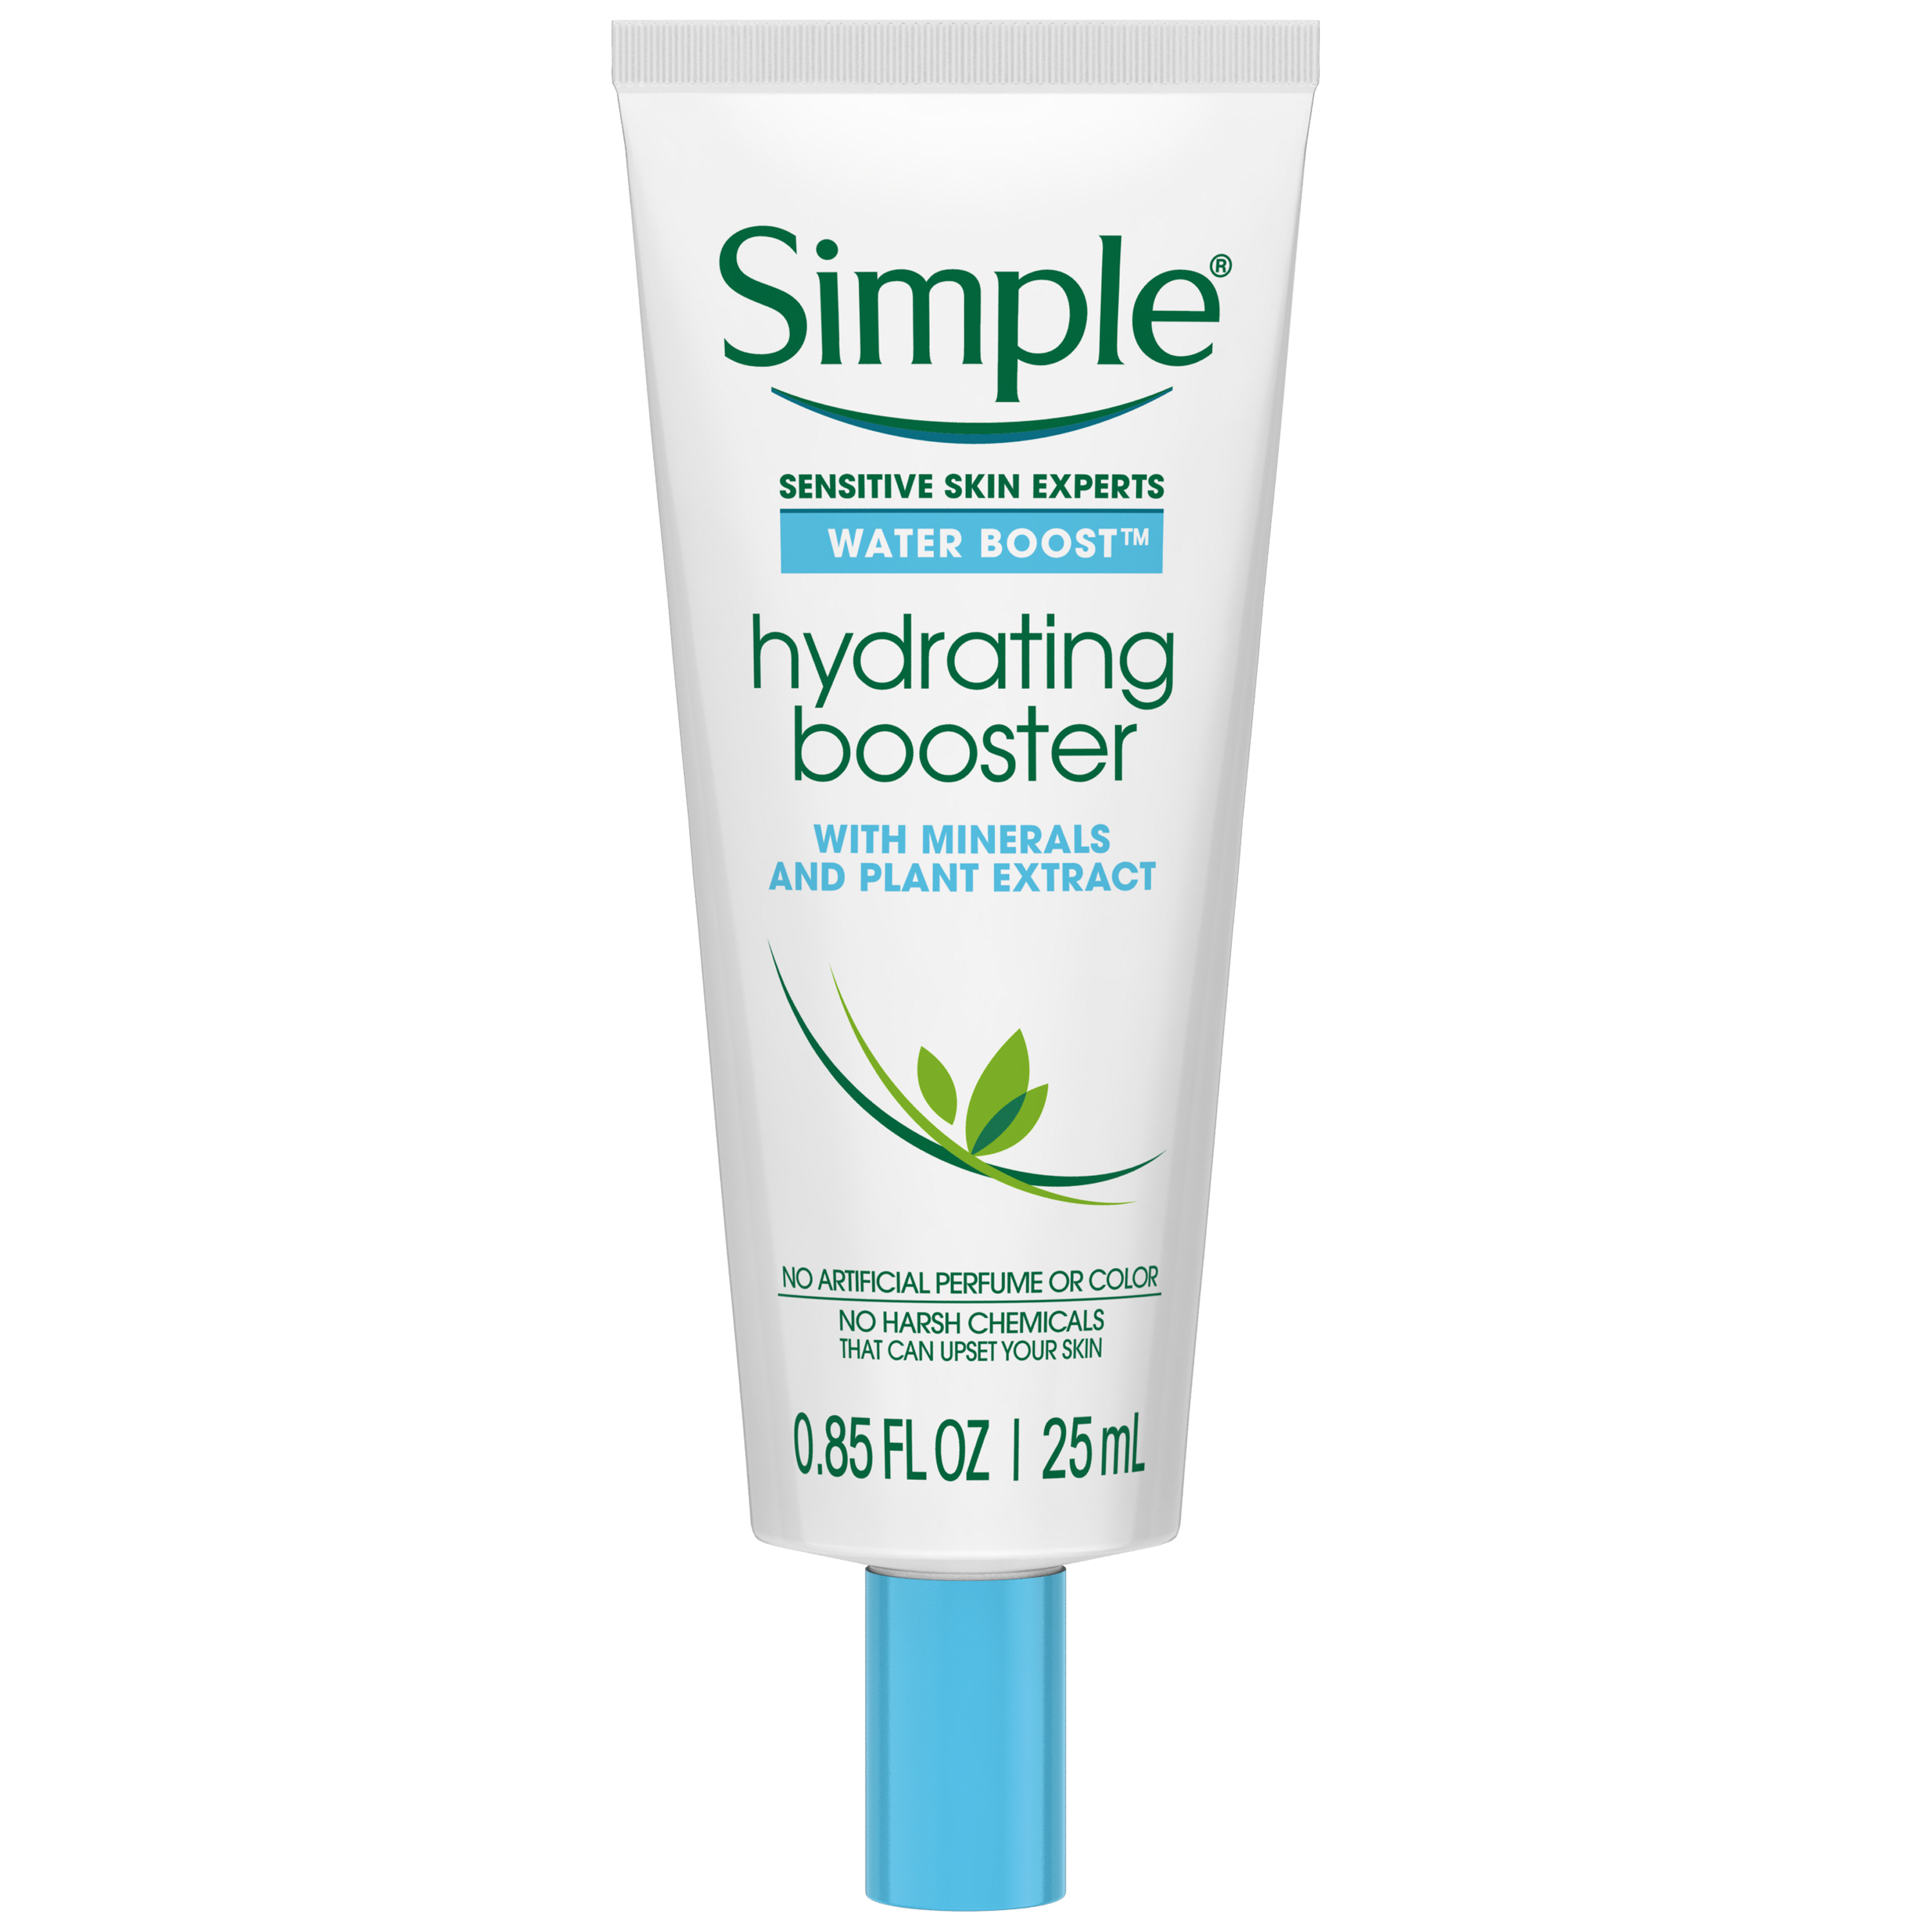 Simple Water Boost Sensitive Skin Hydrating Booster, 1 oz